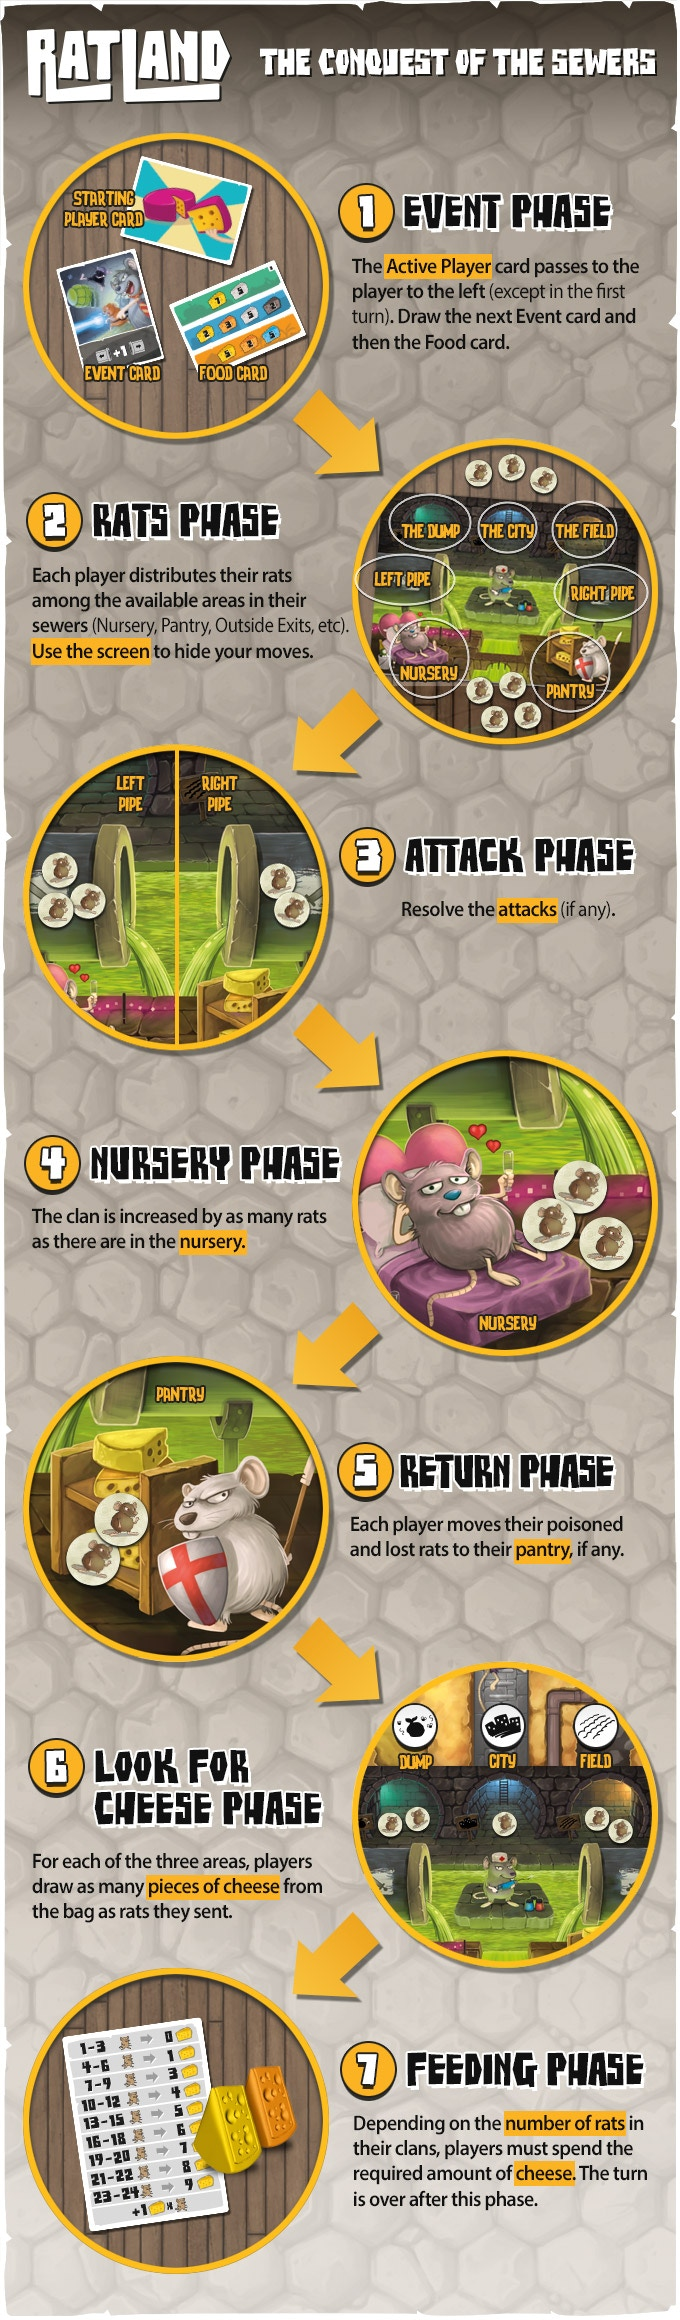 Phases of Ratland: Conquest of the Sewers board game